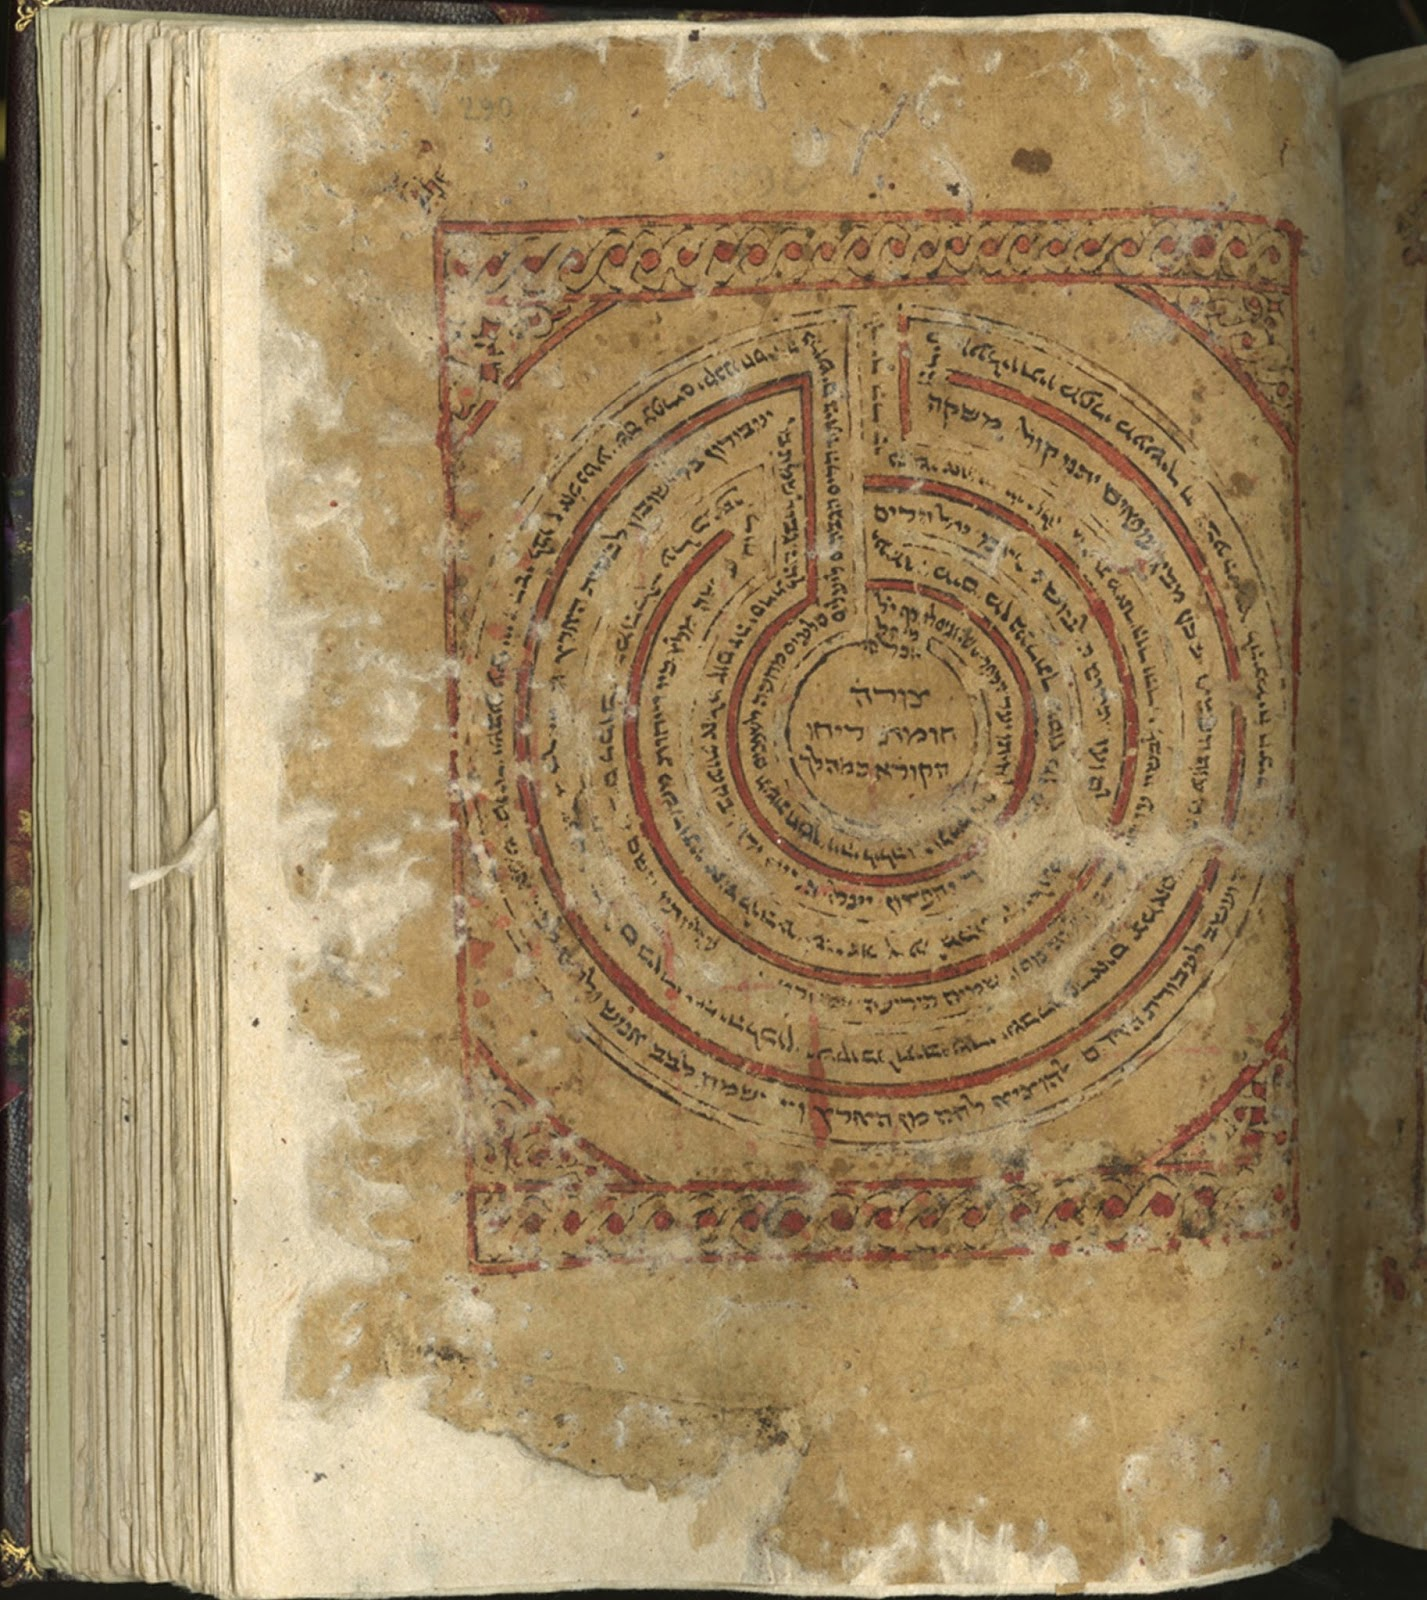 A full-page labyrinthine figure, accompanied by Hebrew text.